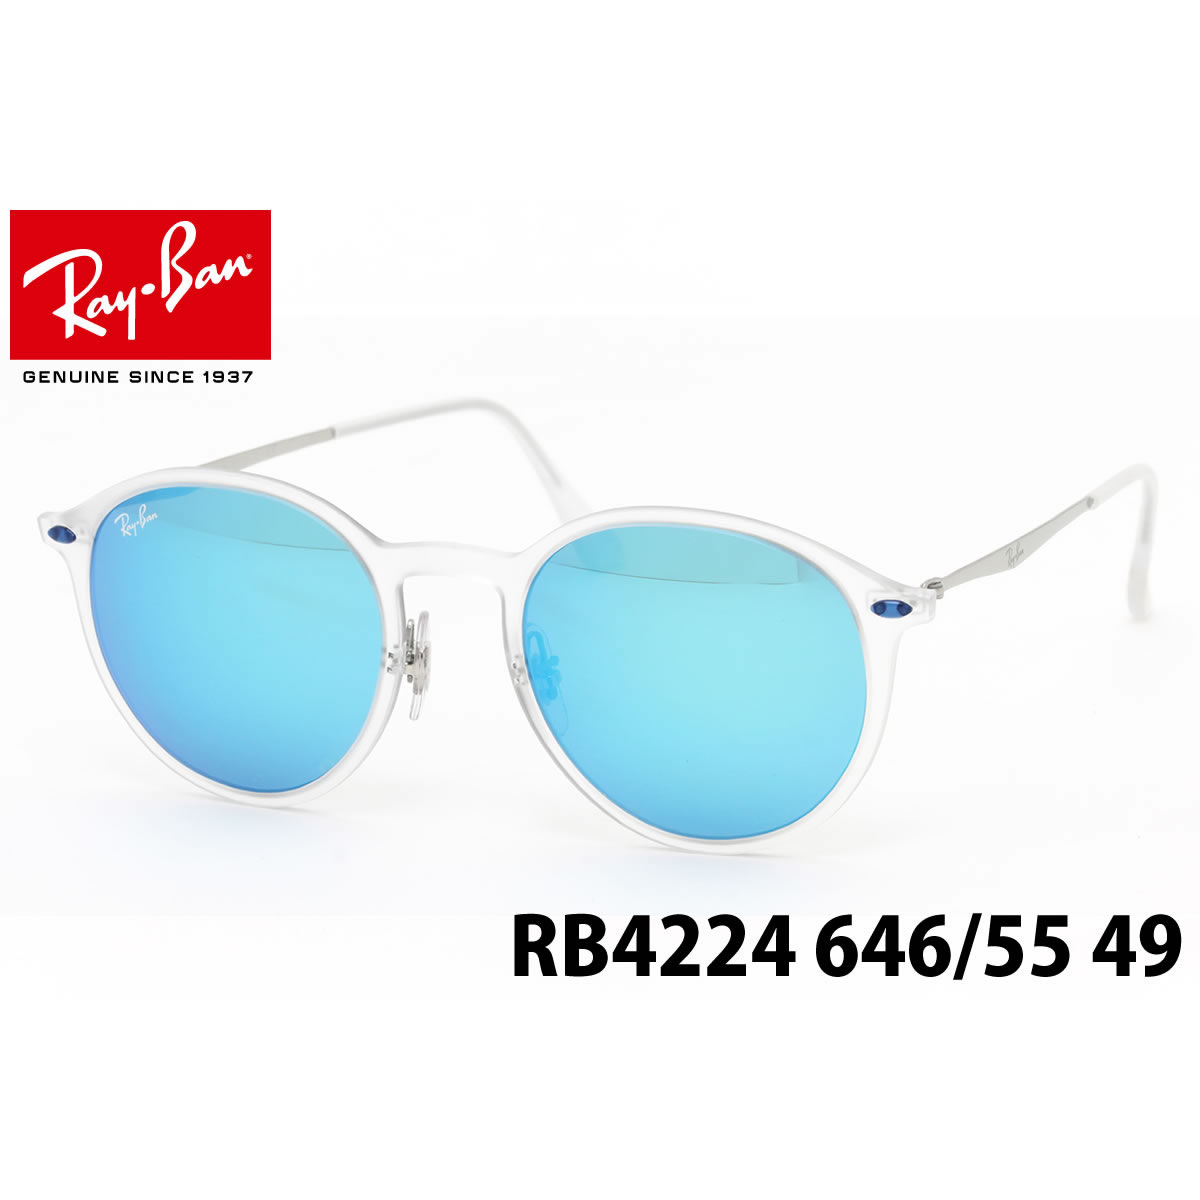 eb1fb504254b4 RB4224 of the Ray-Ban TECH (Ray-Ban technical center) LIGHT RAY (light lei)  series. I used a β titanium material superior in elasticity for a metal  moiety ...